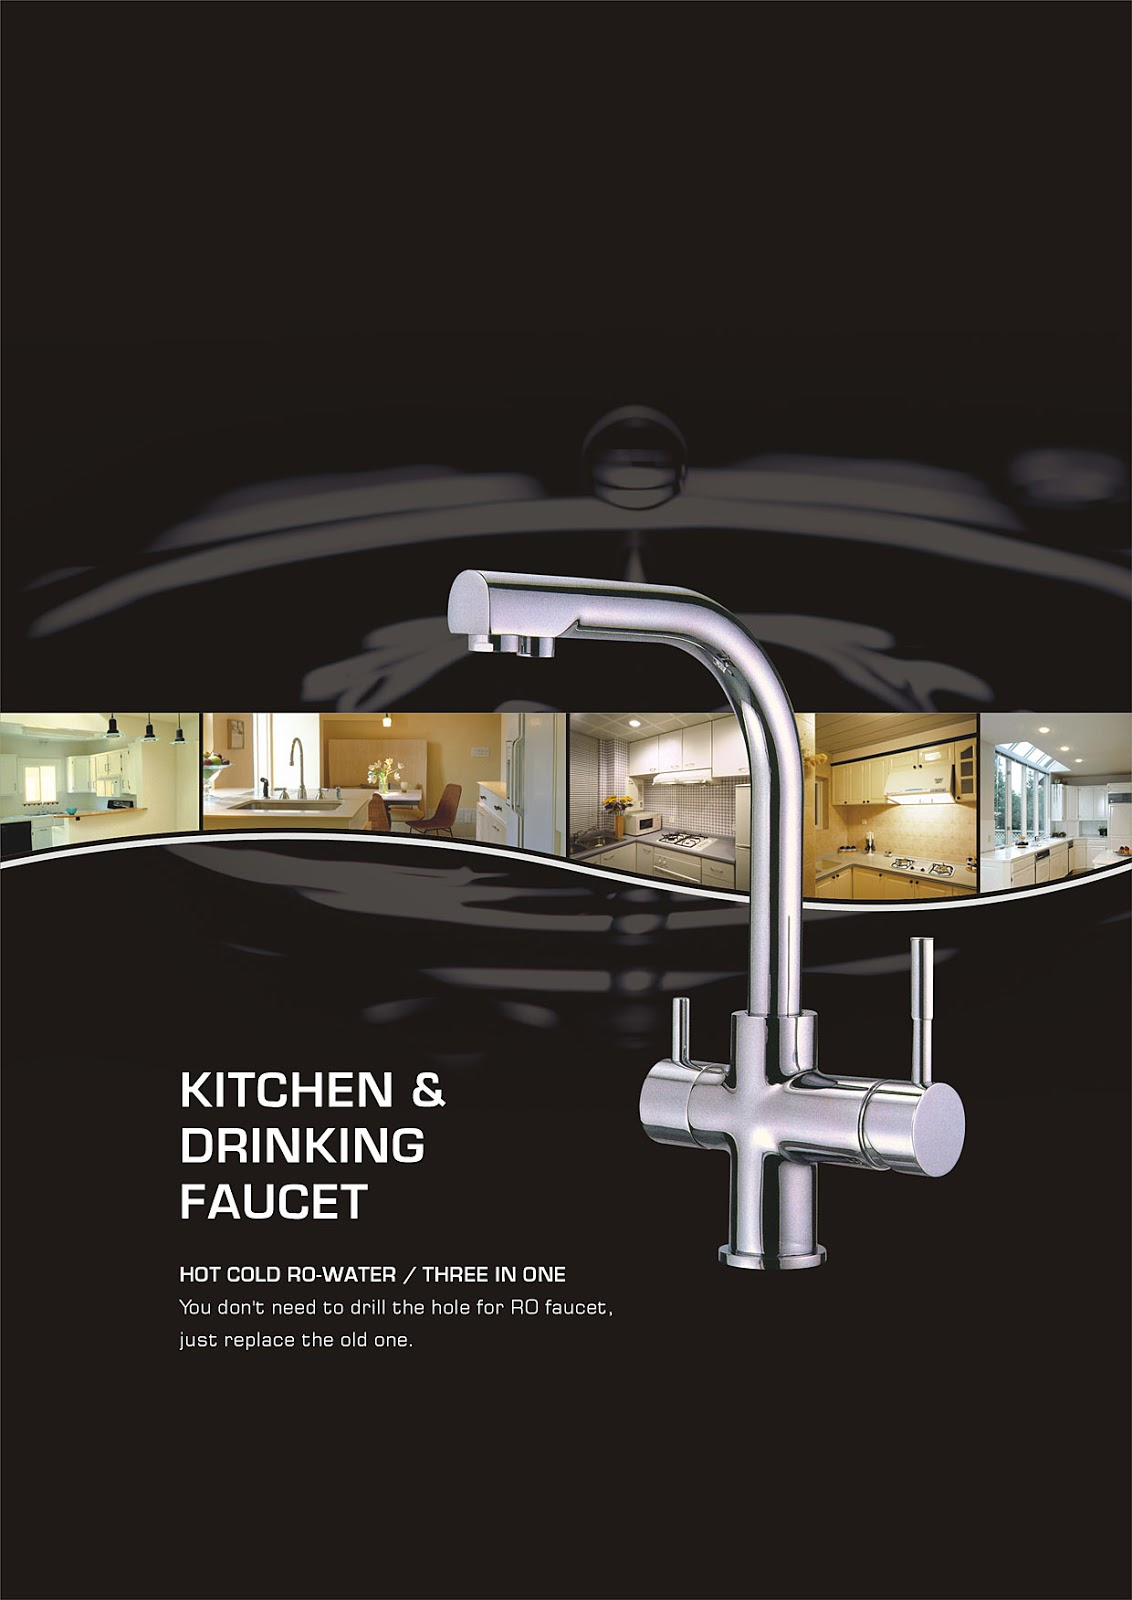 PurePro ® USA Kitchen & Drinking Faucet Part #207 Tree in One RO Faucet